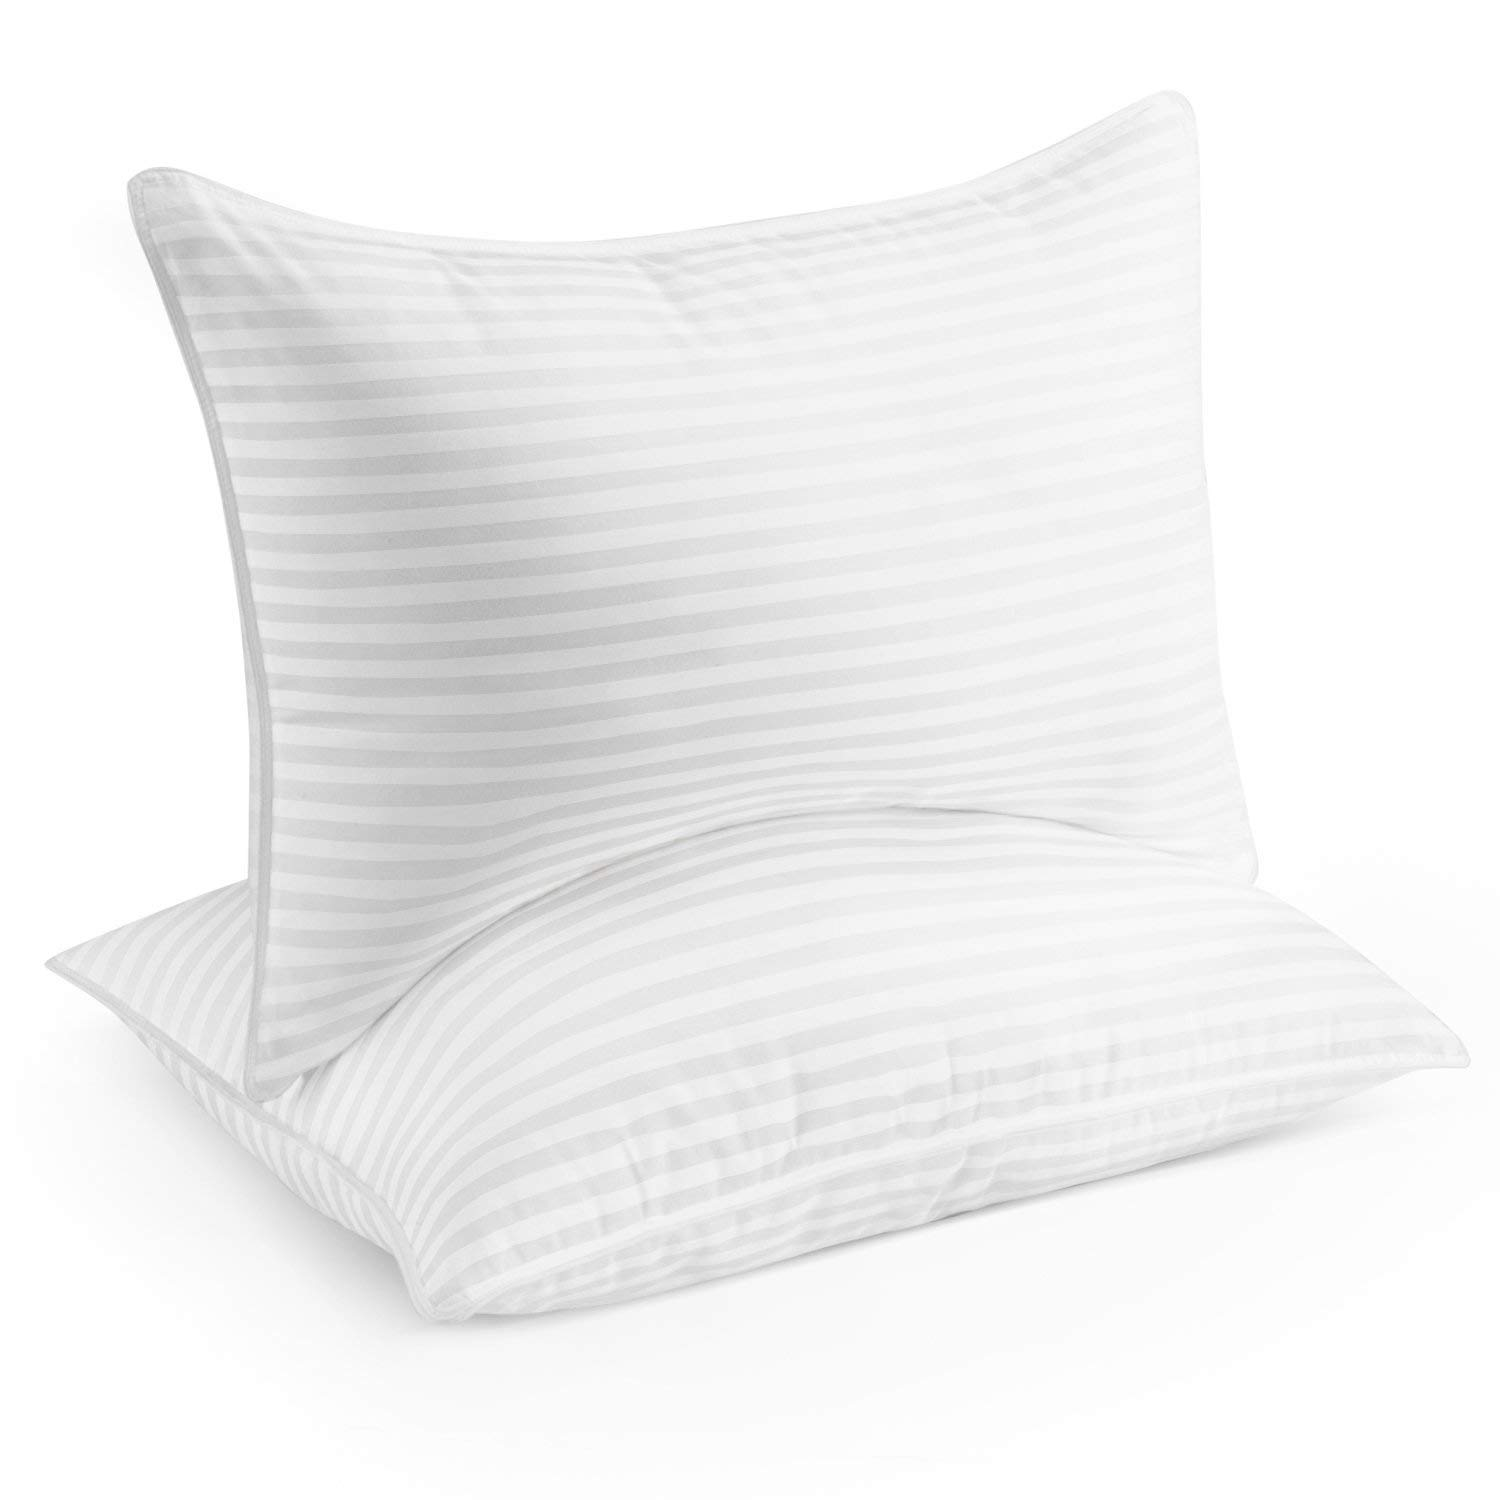 Beckham Hotel Collection Gel Pillow - pillow reviews - Topratedhomeproducts